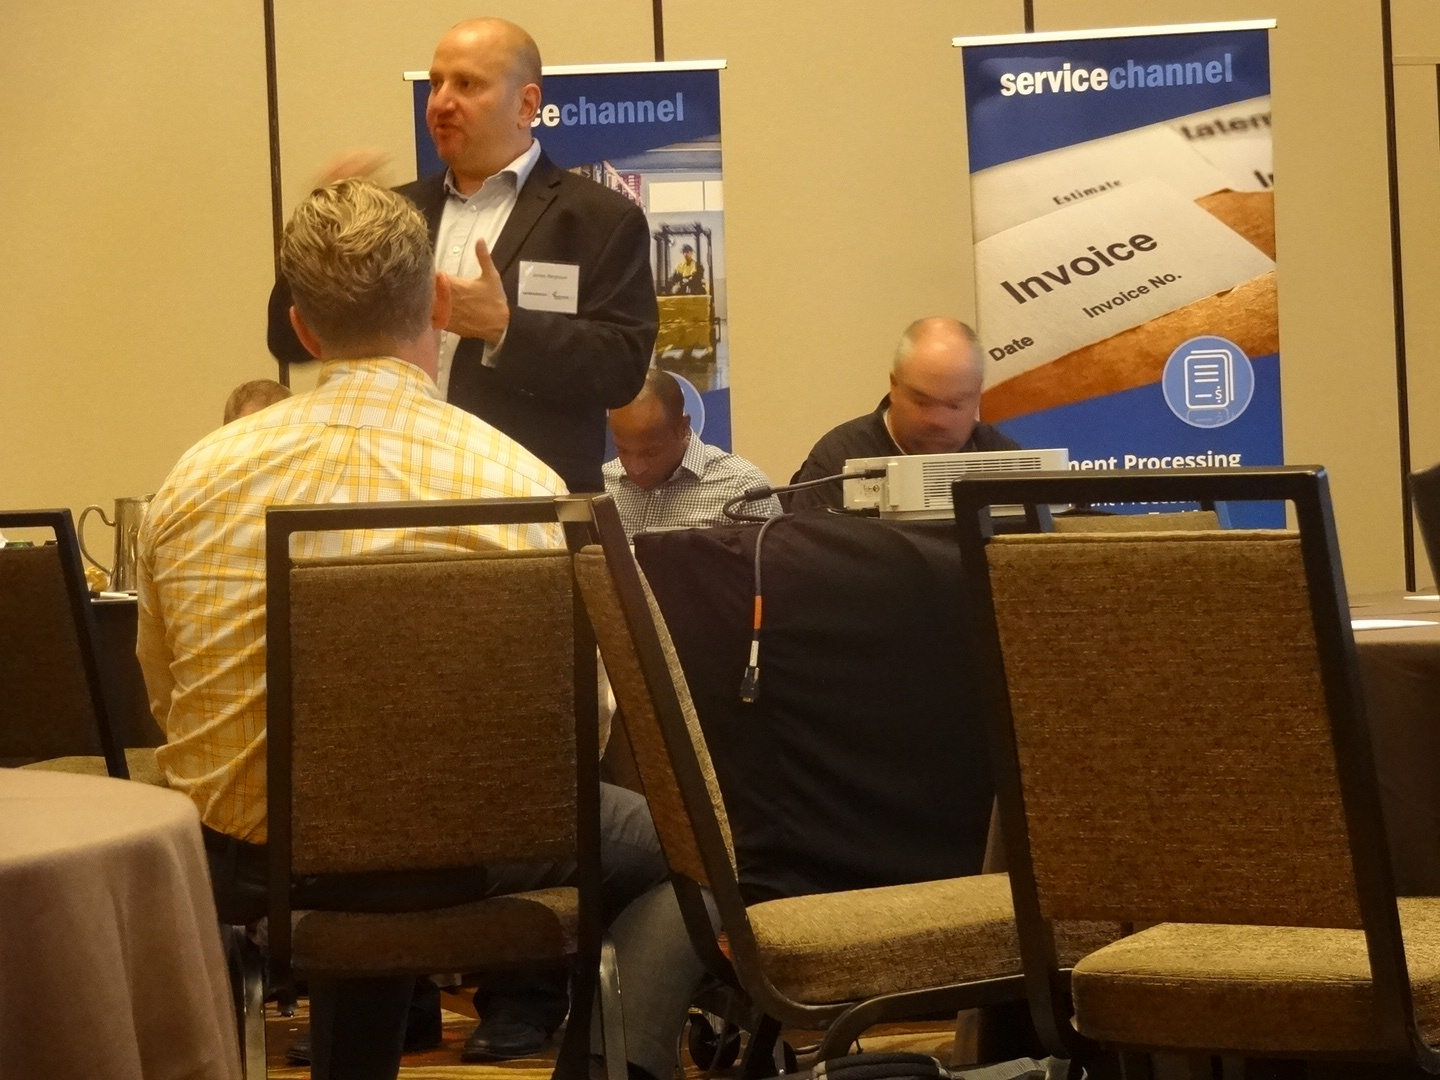 Jordan Bergtram, VP Product Mgmt, discussing FM software with ServiceChannel clients